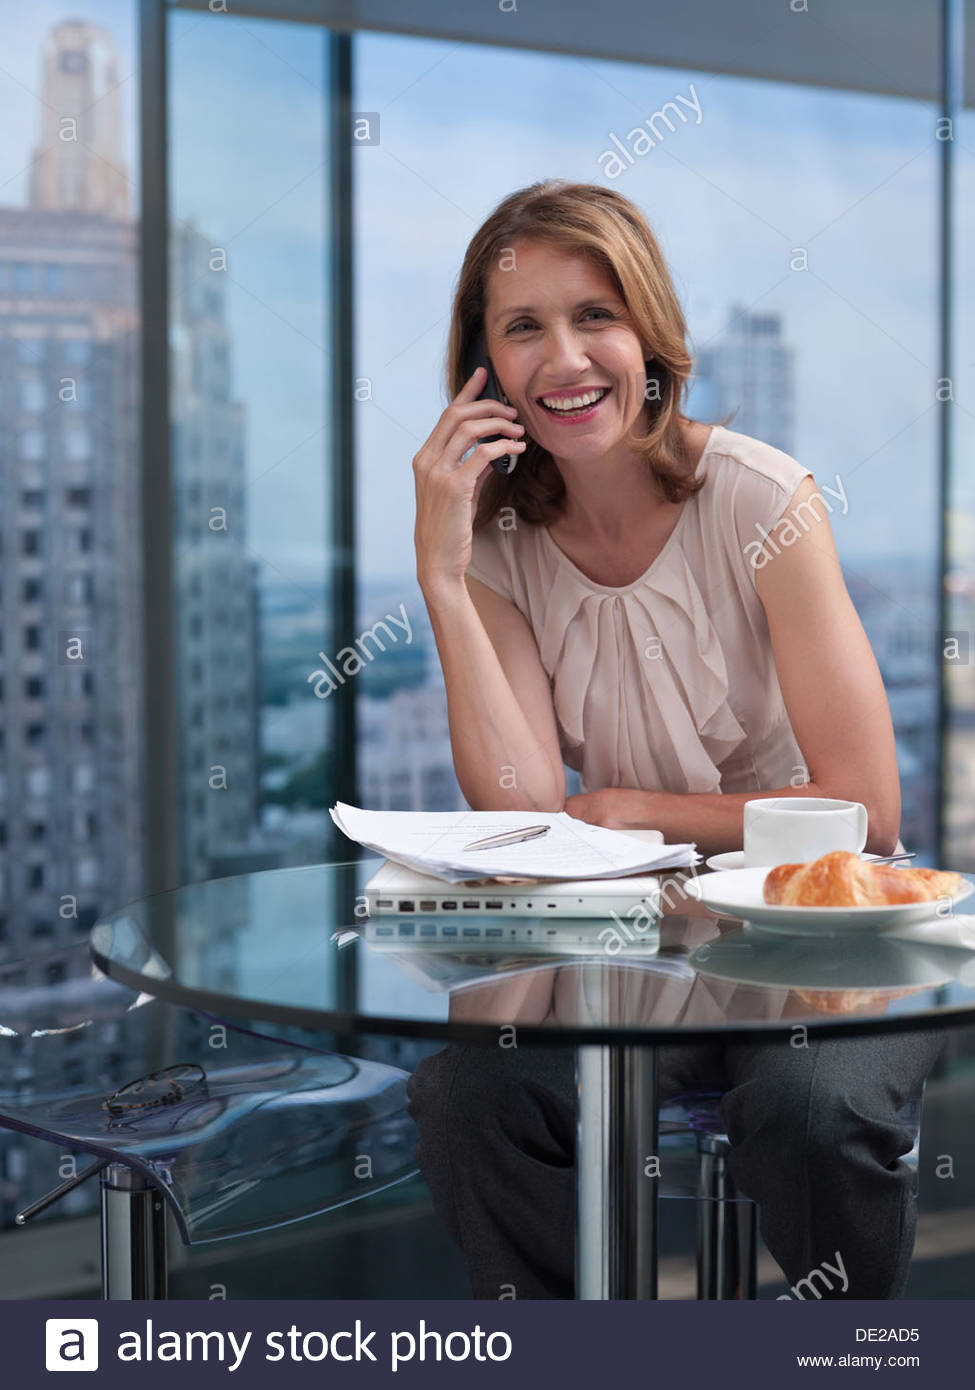 Femme parlant au téléphone avec cityscape in background Photo Stock